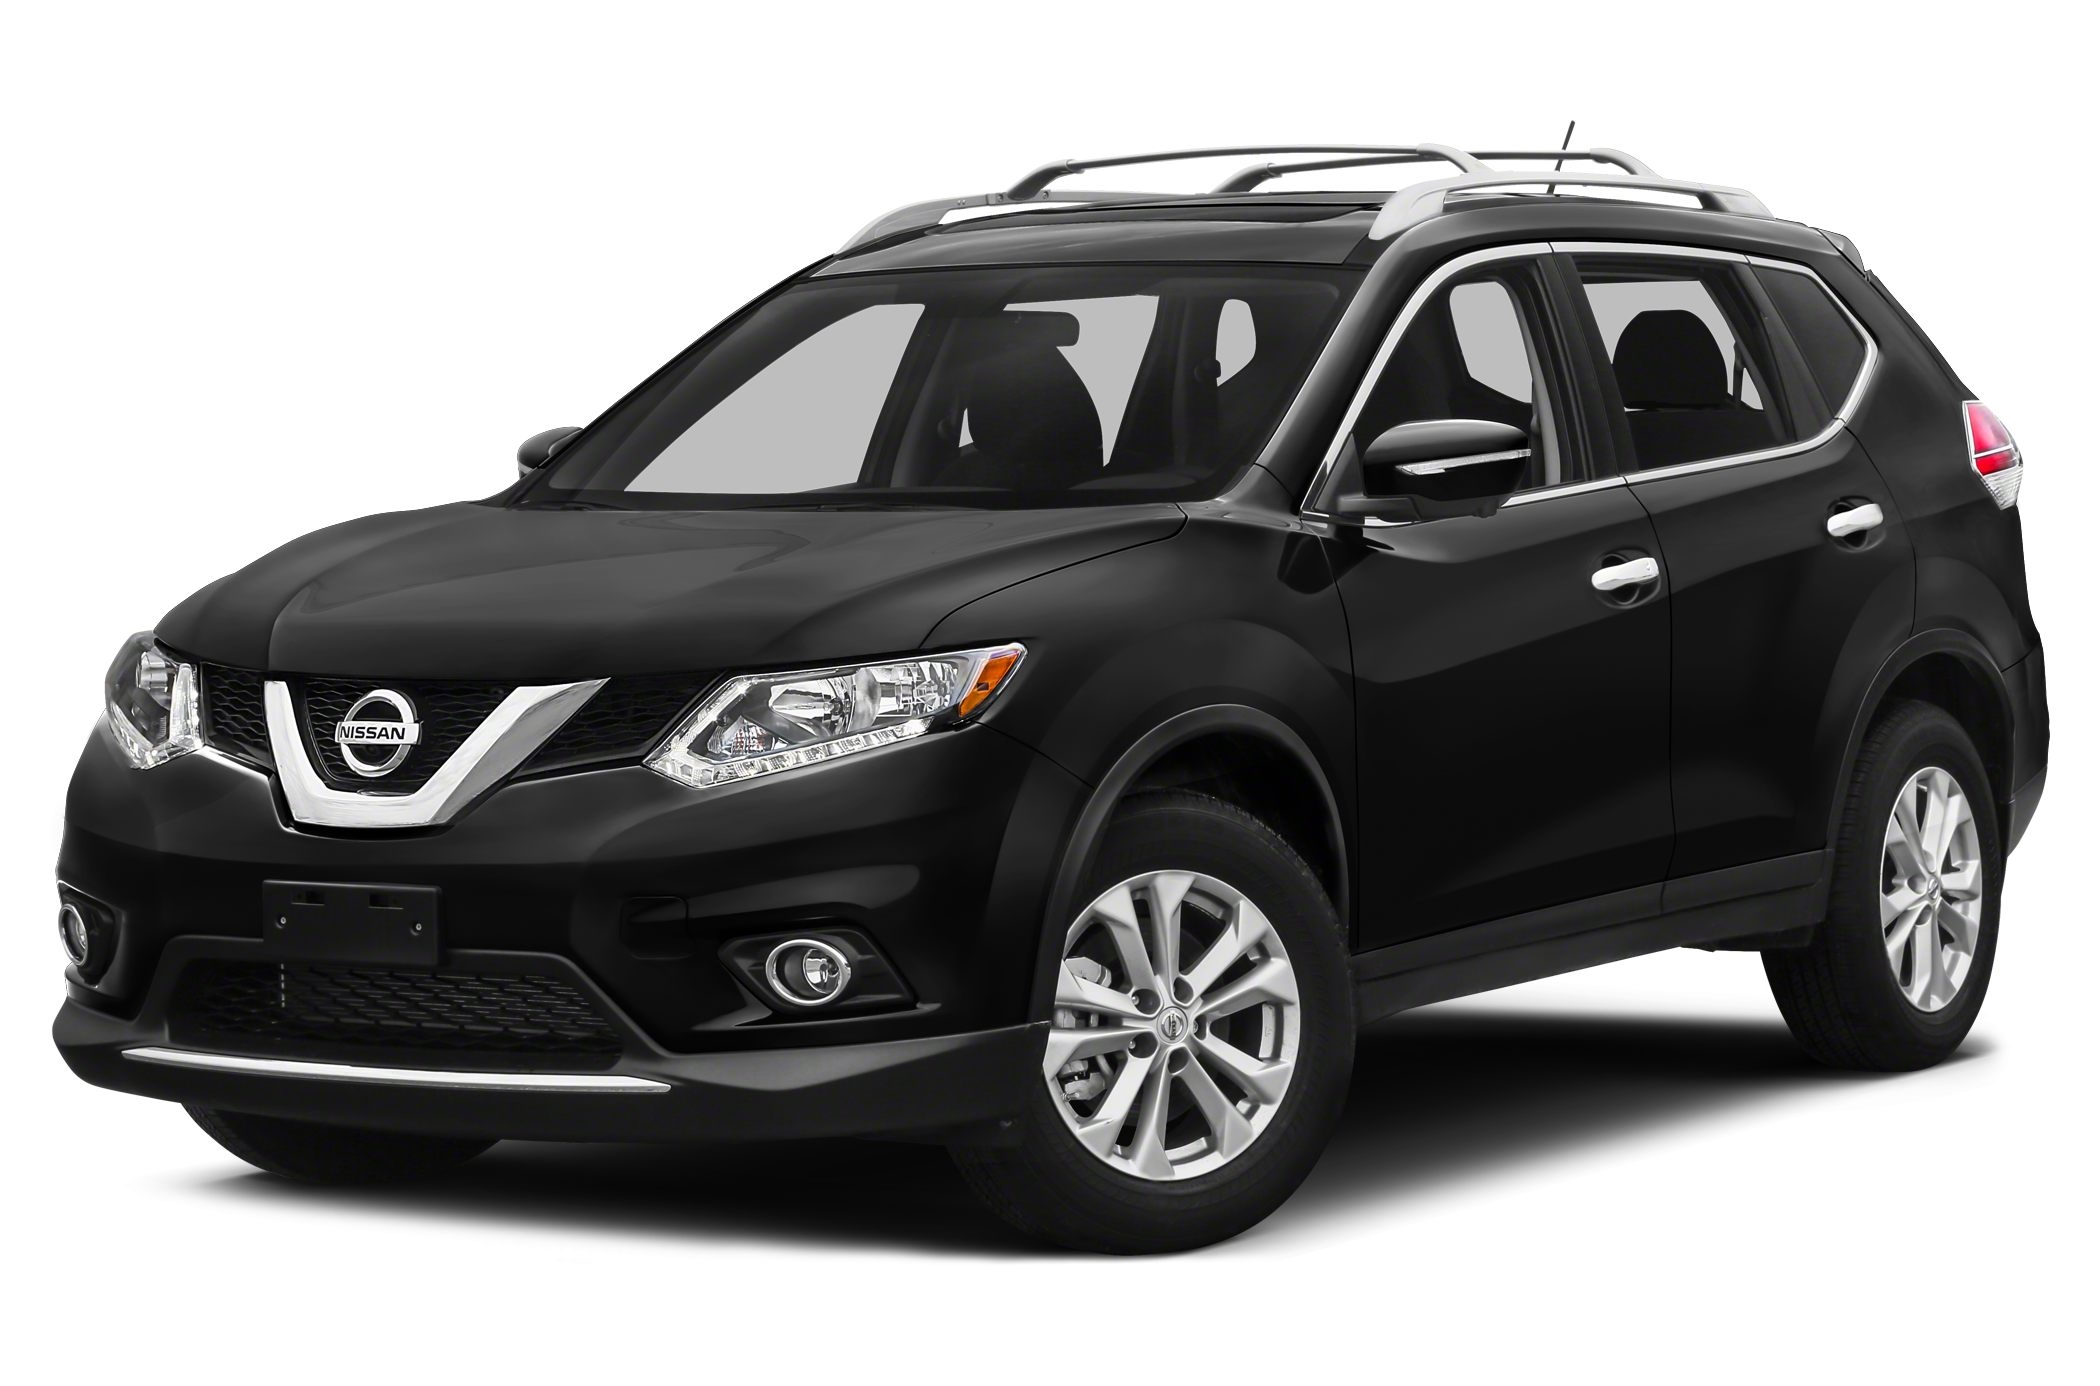 2015 nissan rogue invoice price nissan rogue news photos and buying information autoblog 2100 X 1386